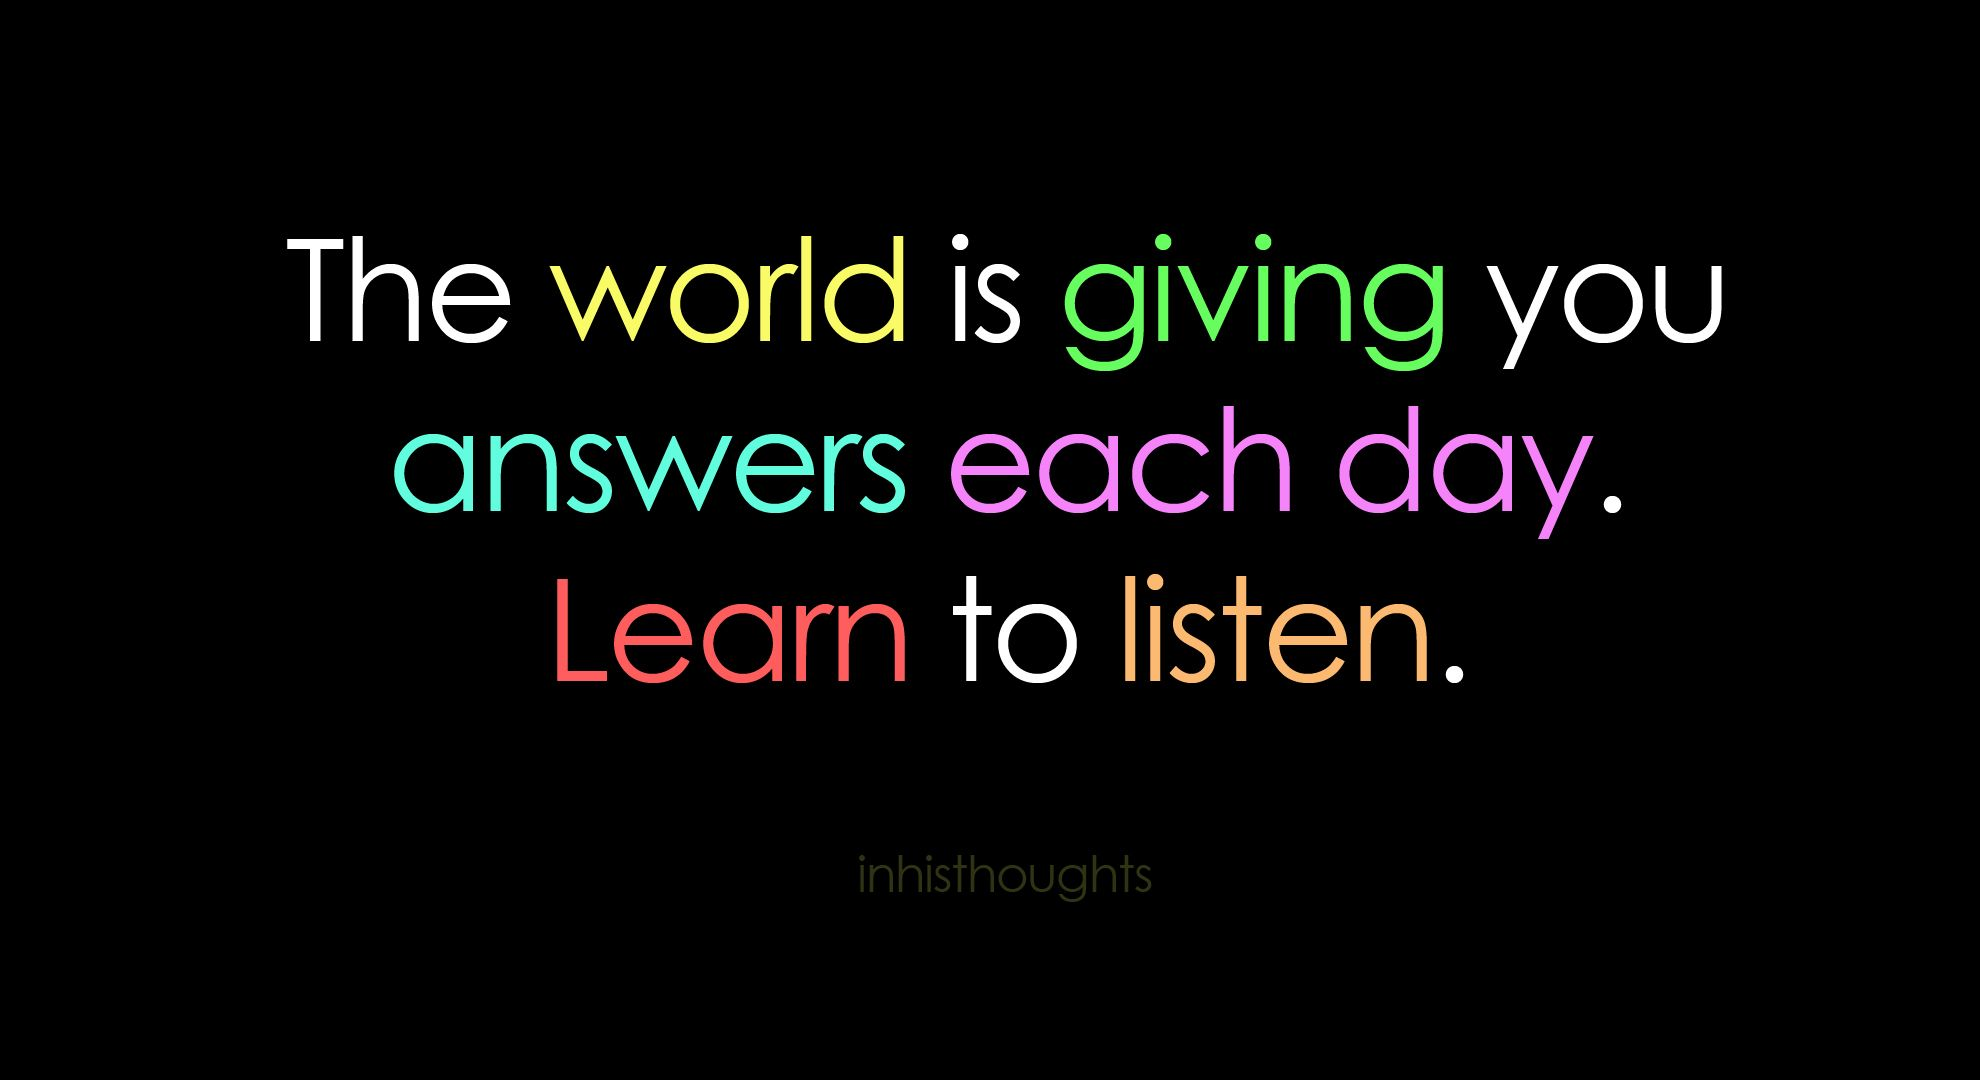 learn to listen | Quotes & Sentences for My Pinboard ...